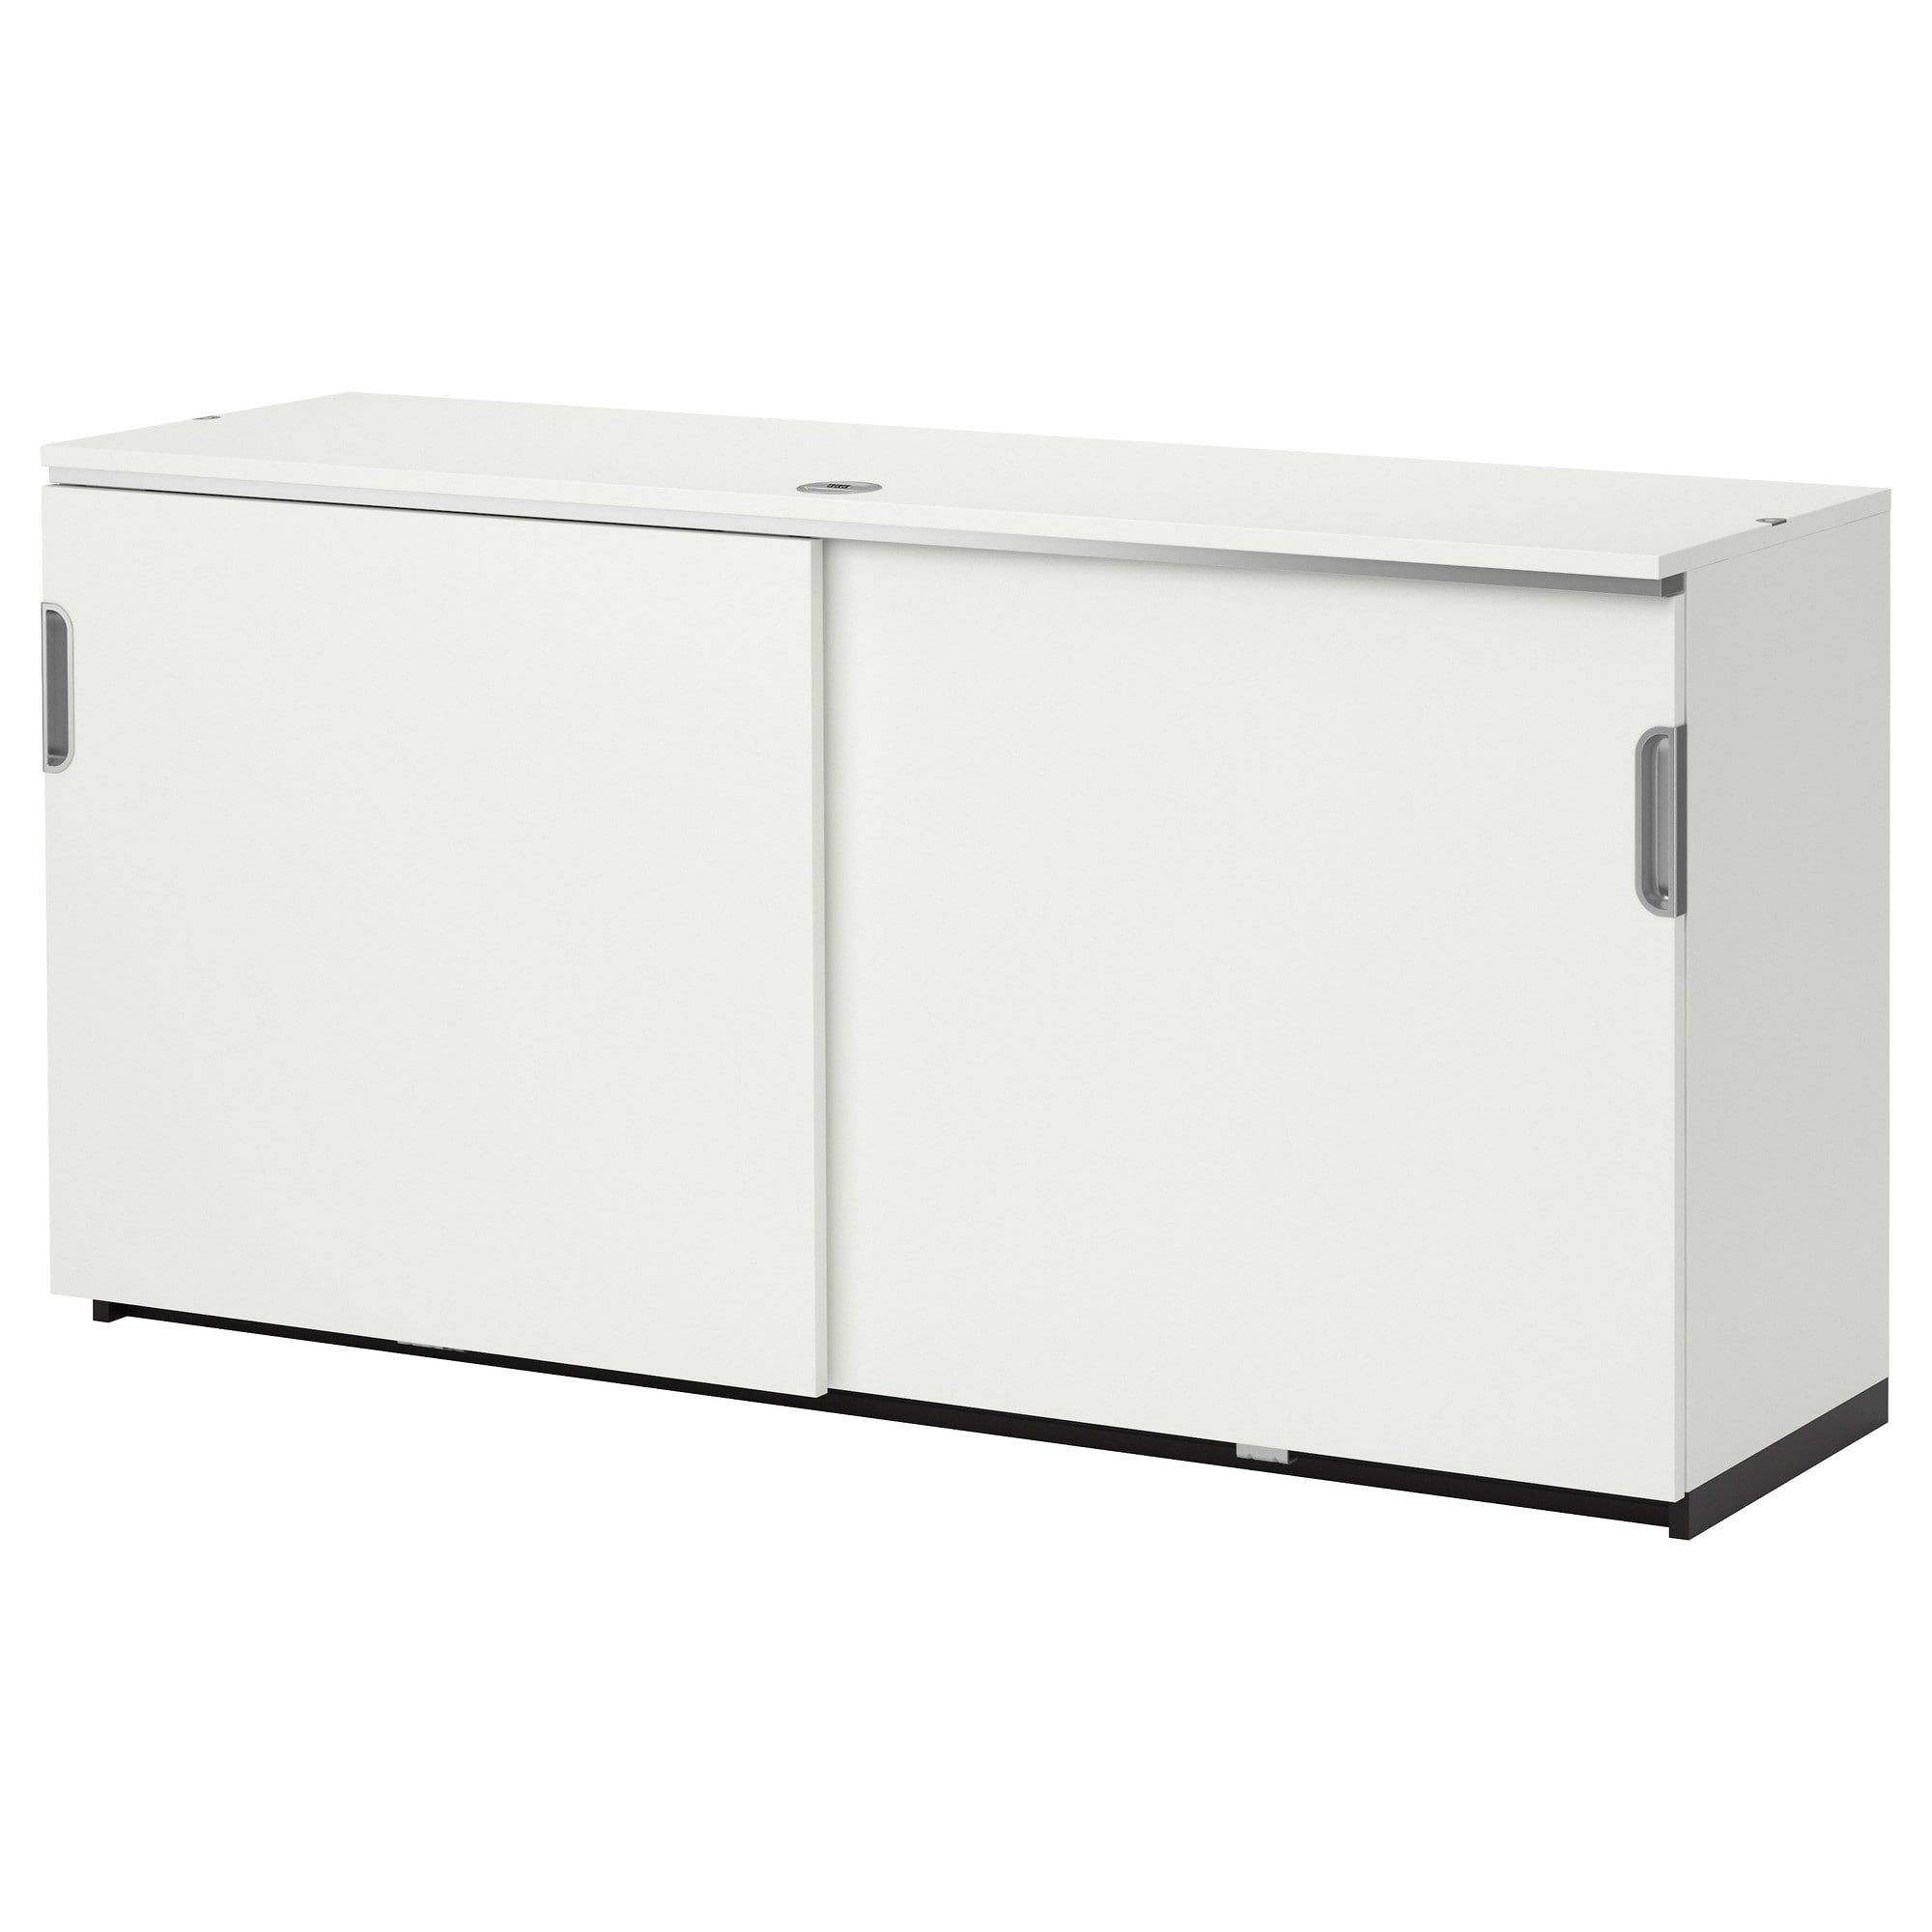 Office storage cabinets ikea Enclosed Storage Galant Cabinet With Sliding Doors White Ikea Pinterest Galant Cabinet With Sliding Doors White Ikea Becca Office